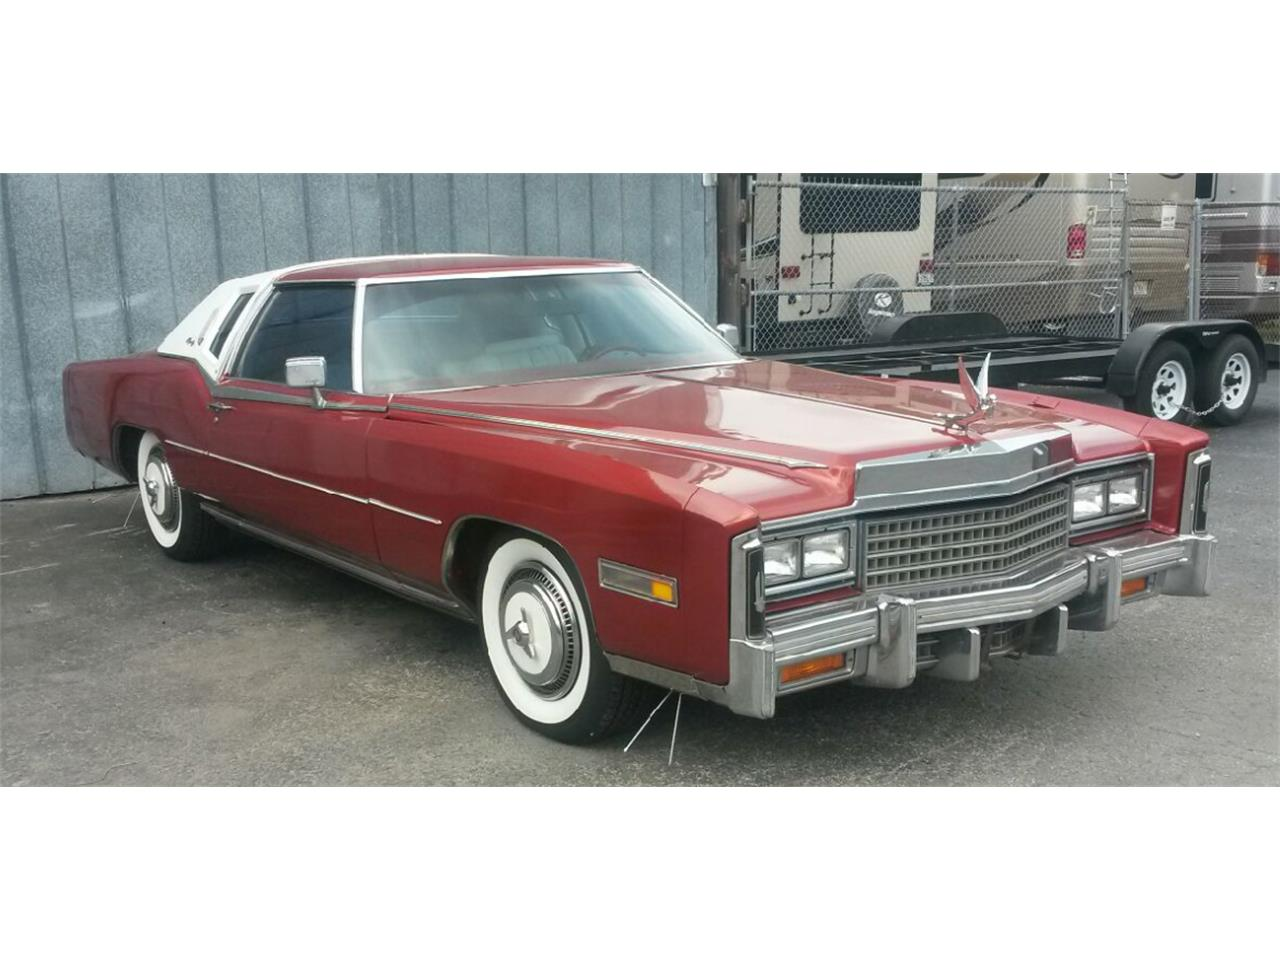 Large Picture of 1978 Cadillac Eldorado Biarritz - $12,500.00 Offered by a Private Seller - KQ5W